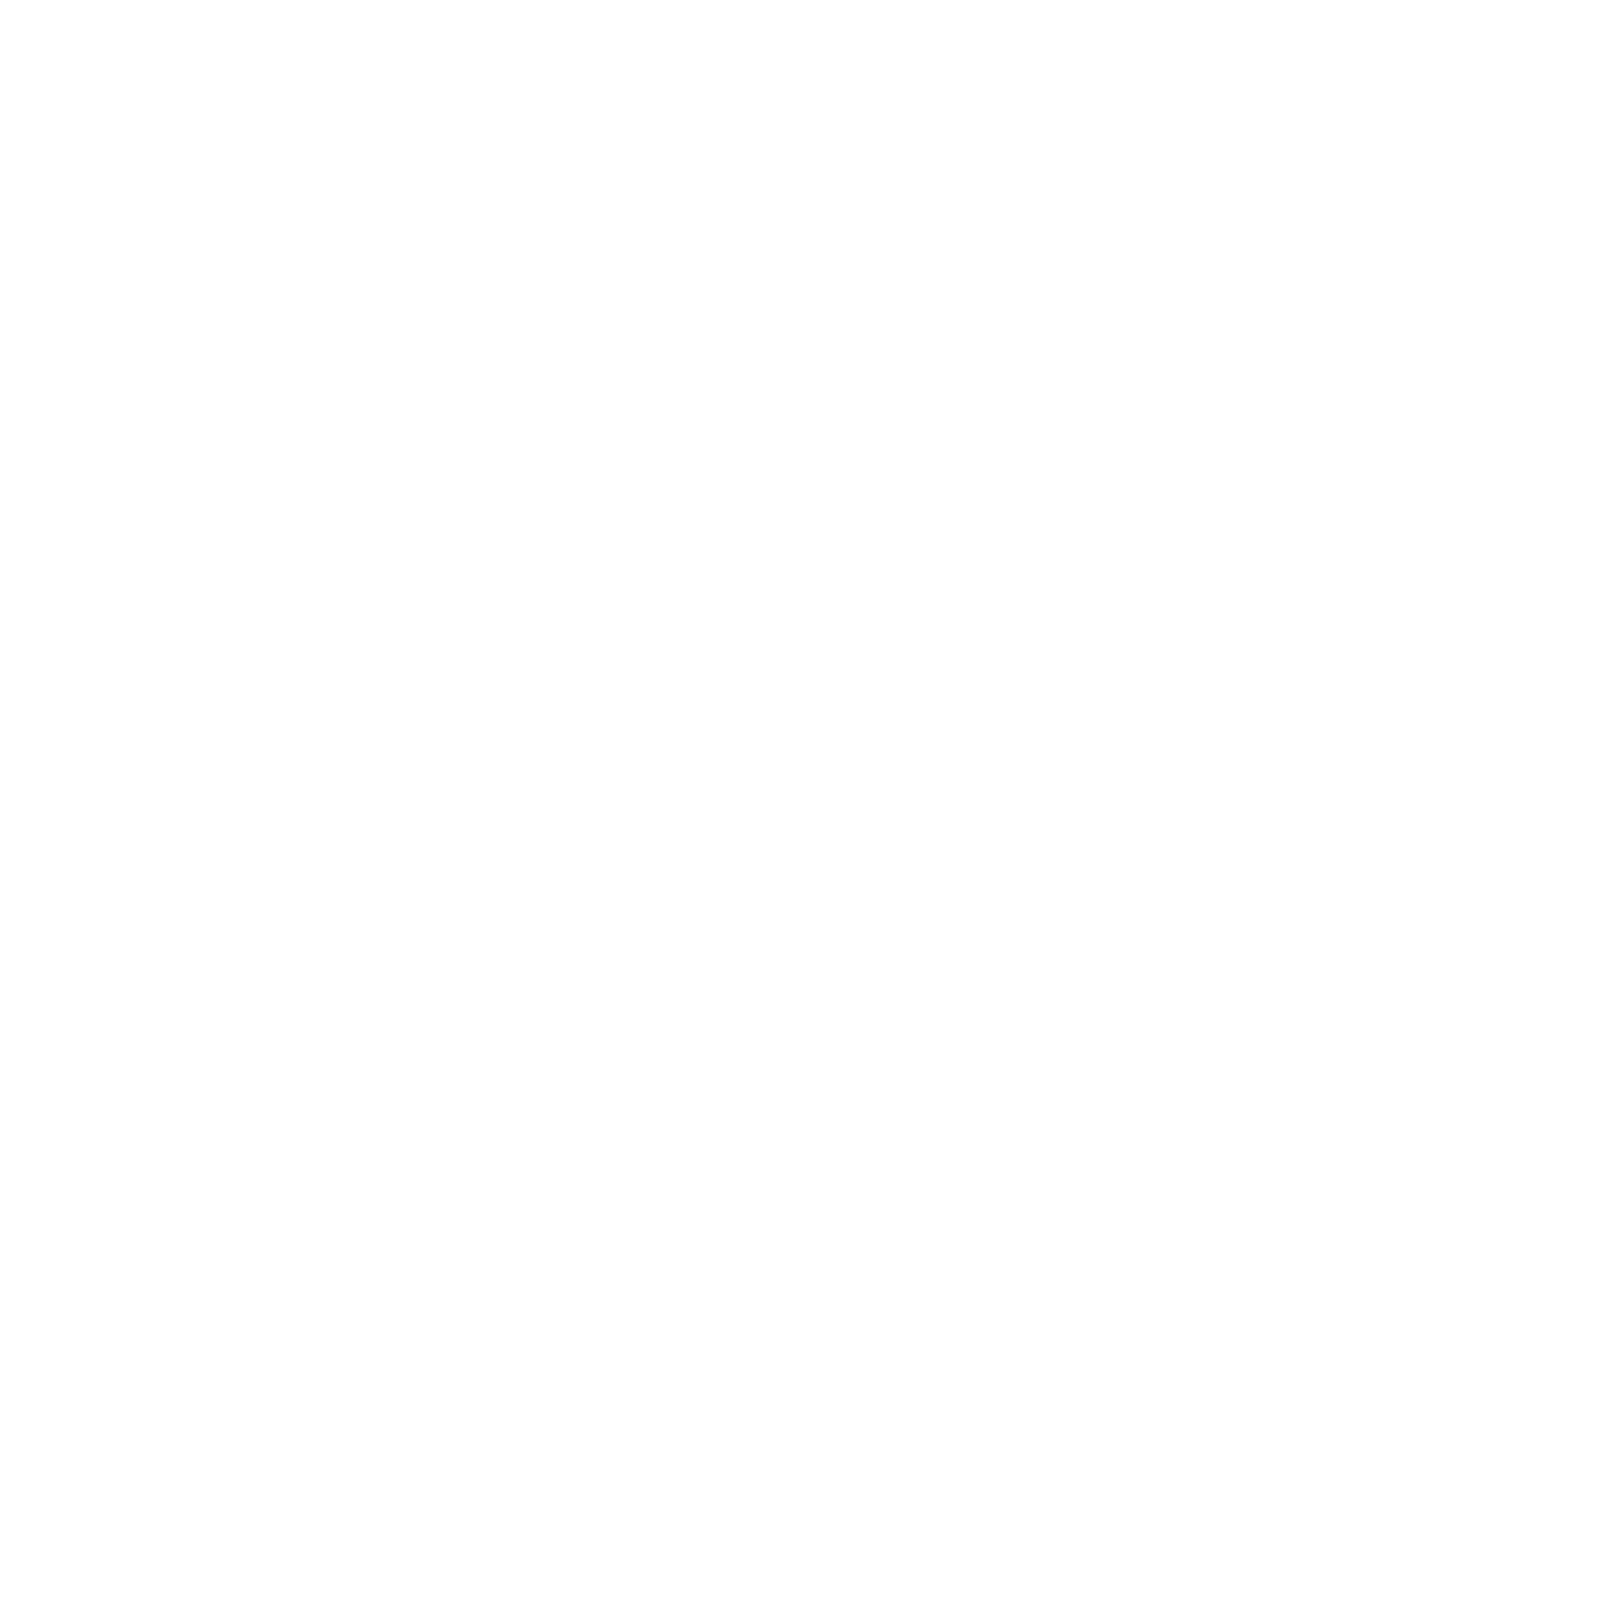 hyperion-project-logo